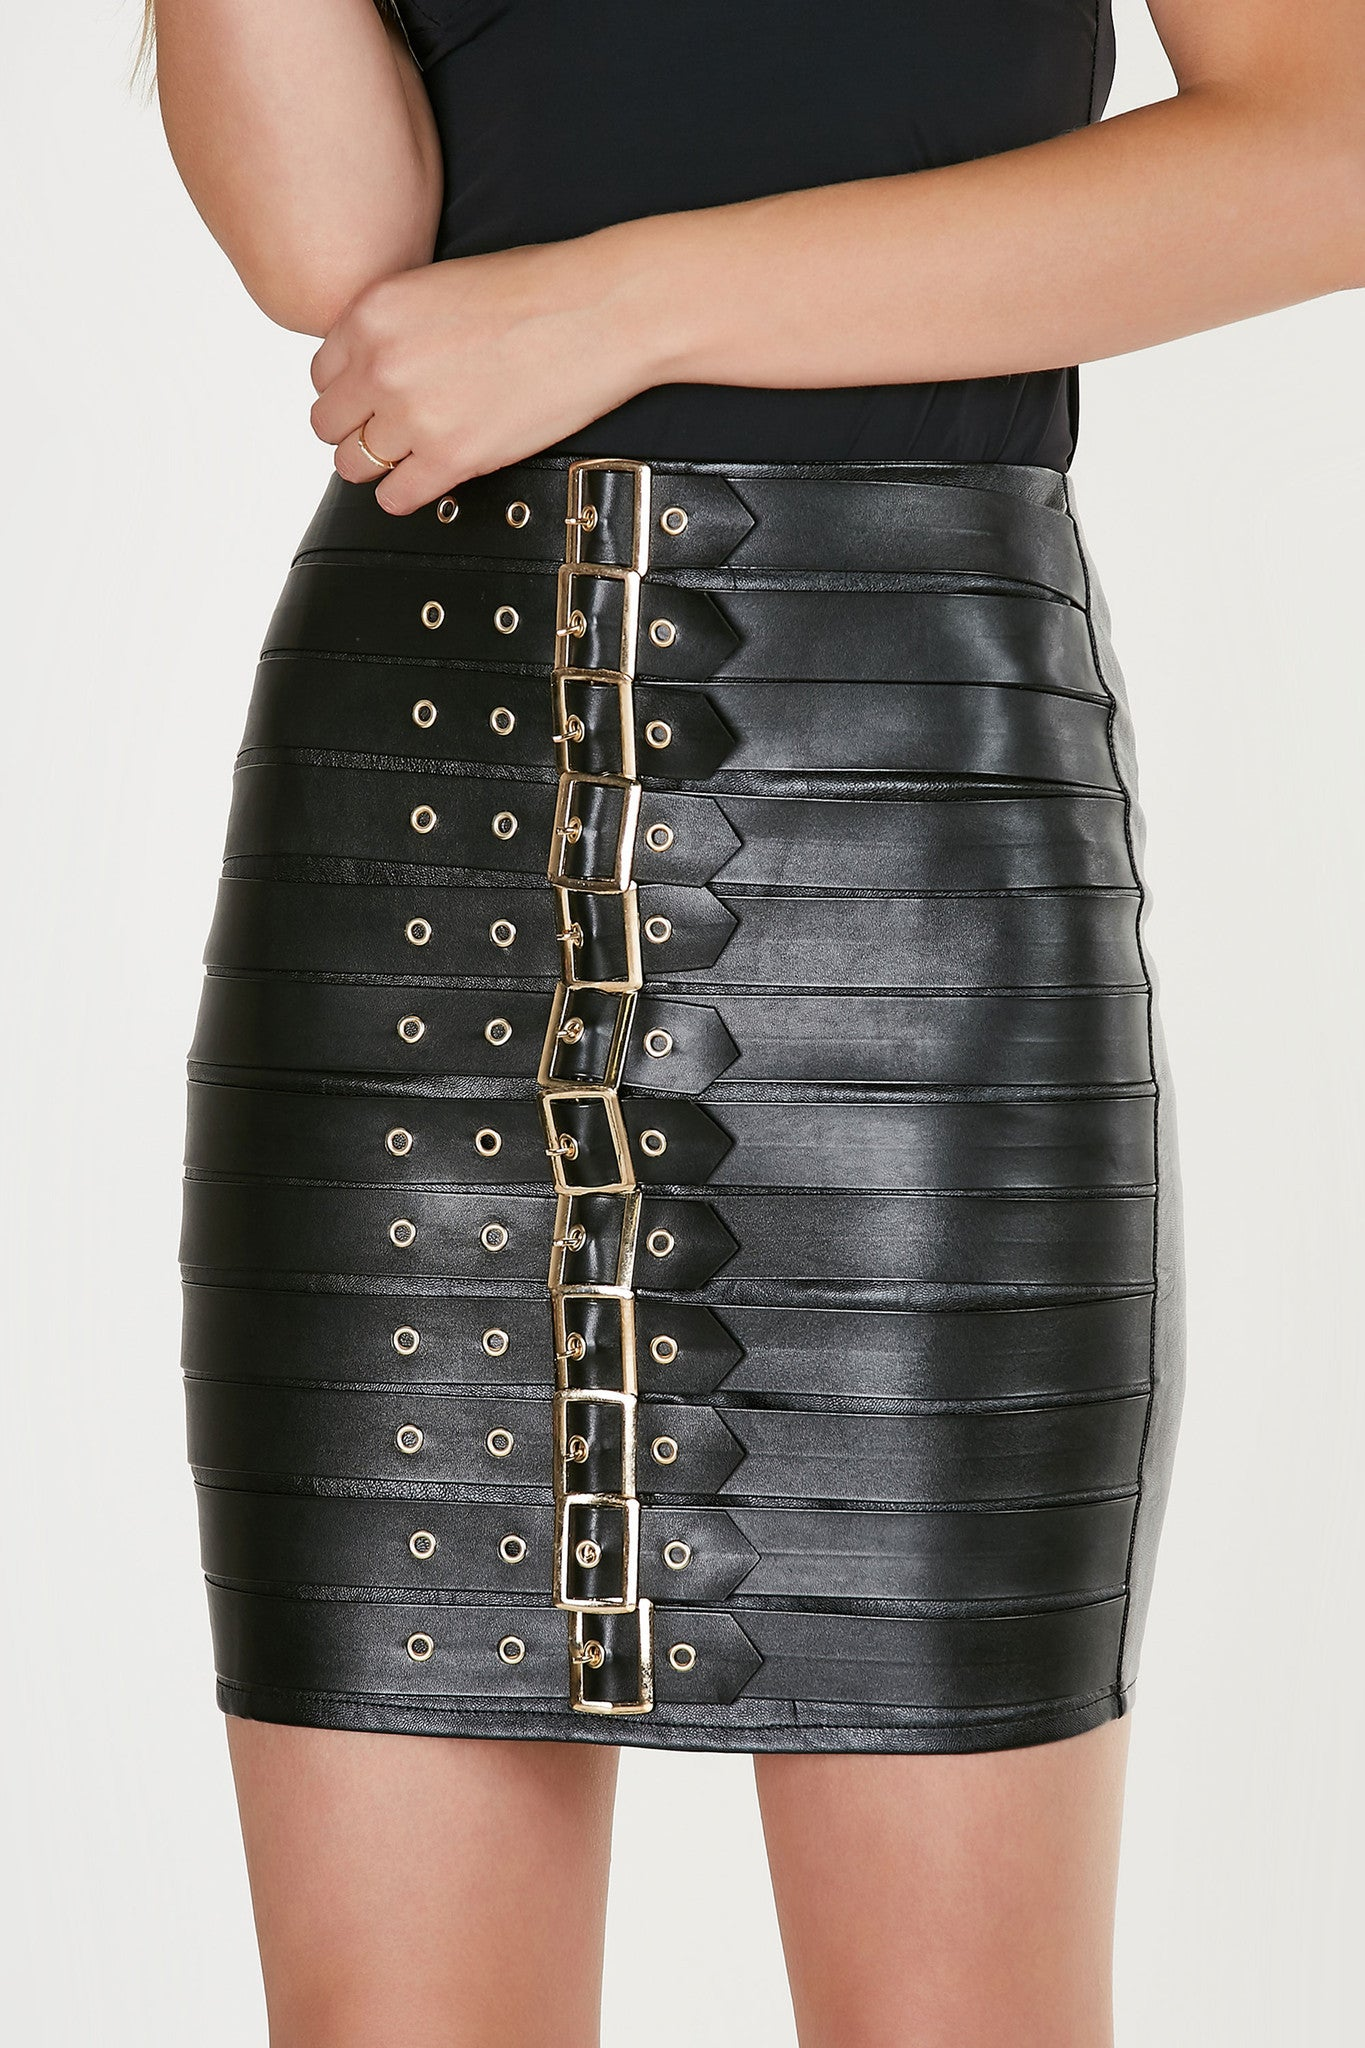 Sexy high rise mini skirt with faux leather finish. Bold belted design with gold hardware finish and back zip closure.